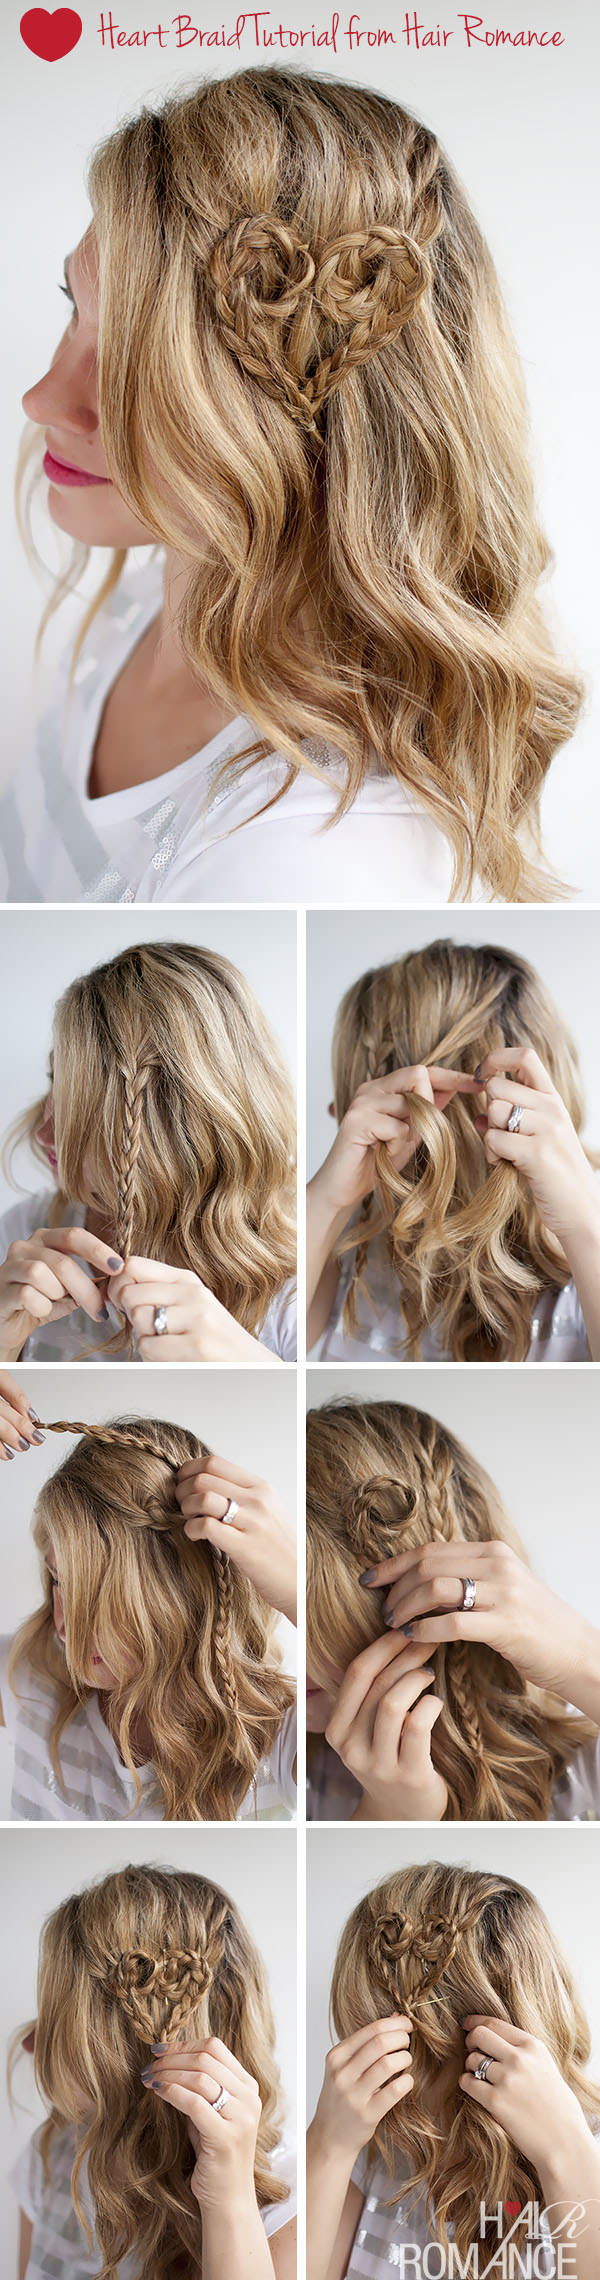 Valentine's Day Hairstyle Tutorials